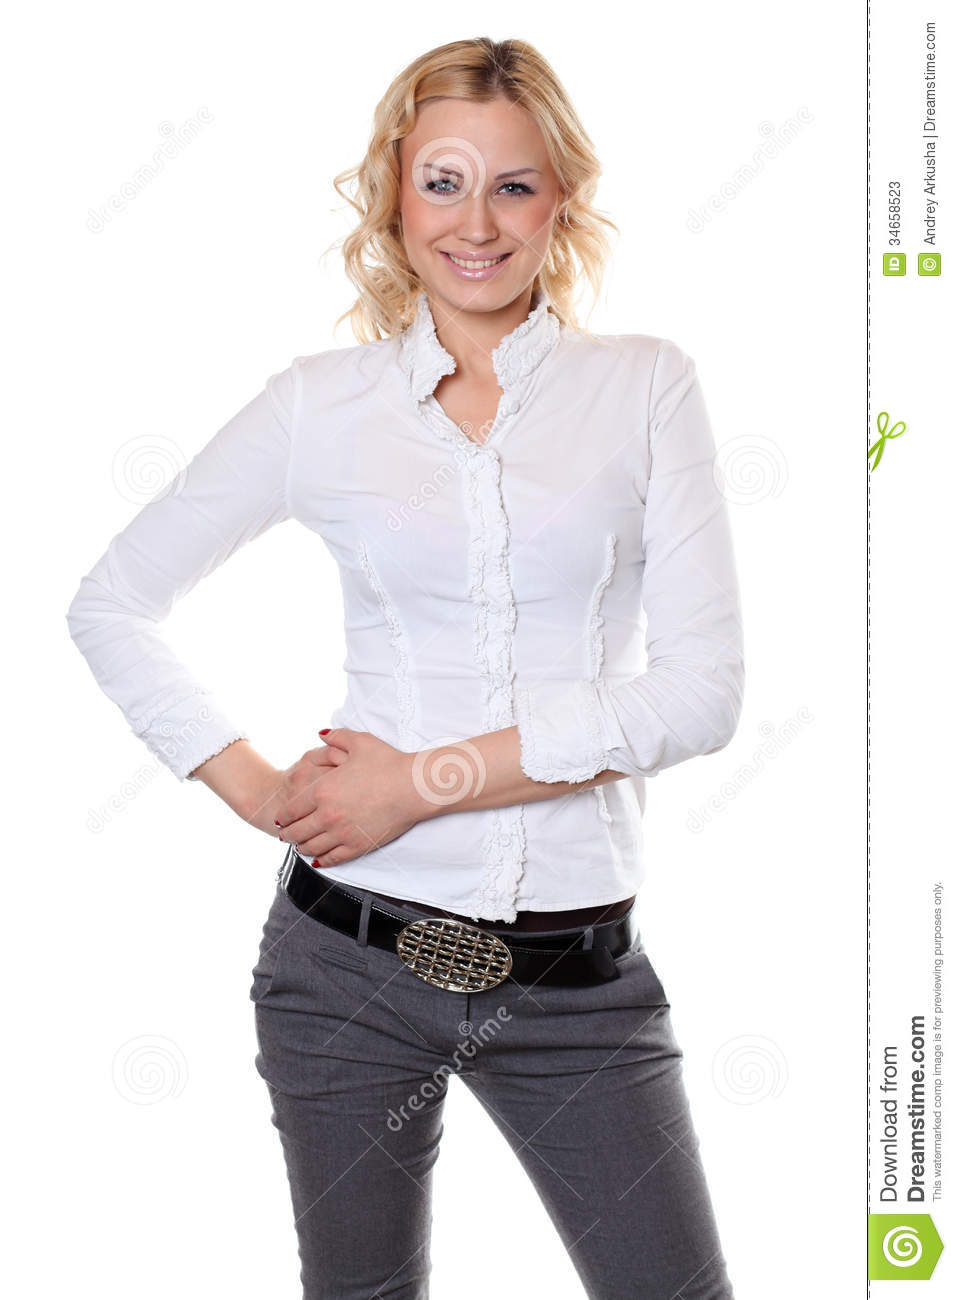 Beautiful Woman In White Shirt Stock Photos - Image: 34658523